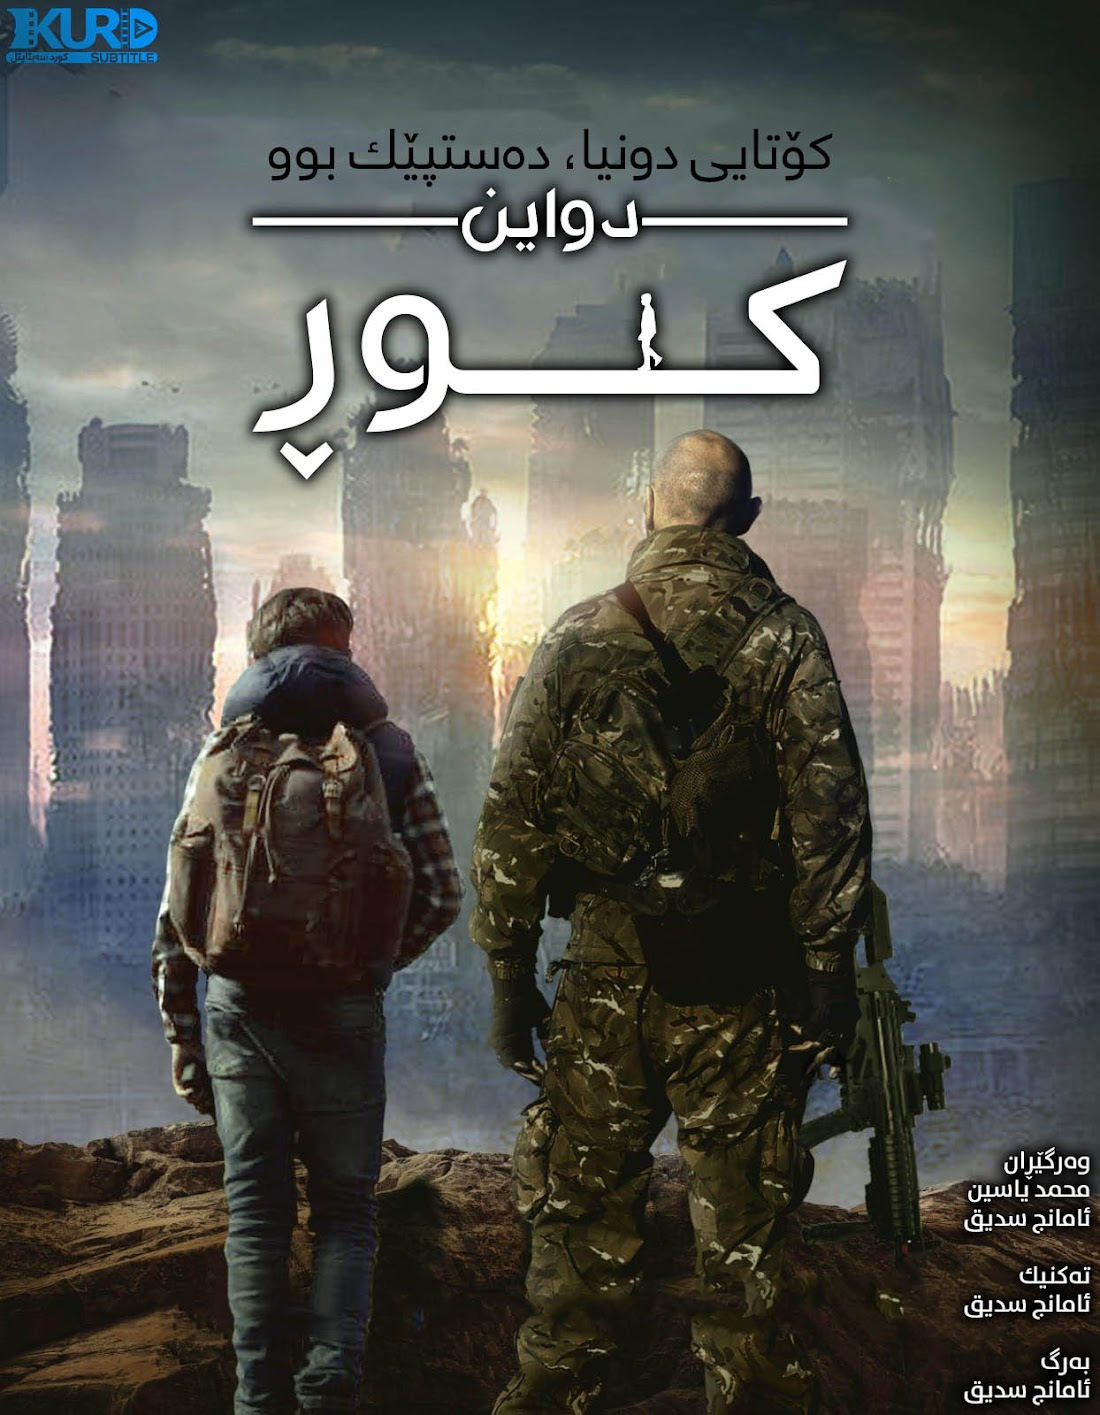 The Last Boy kurdish poster